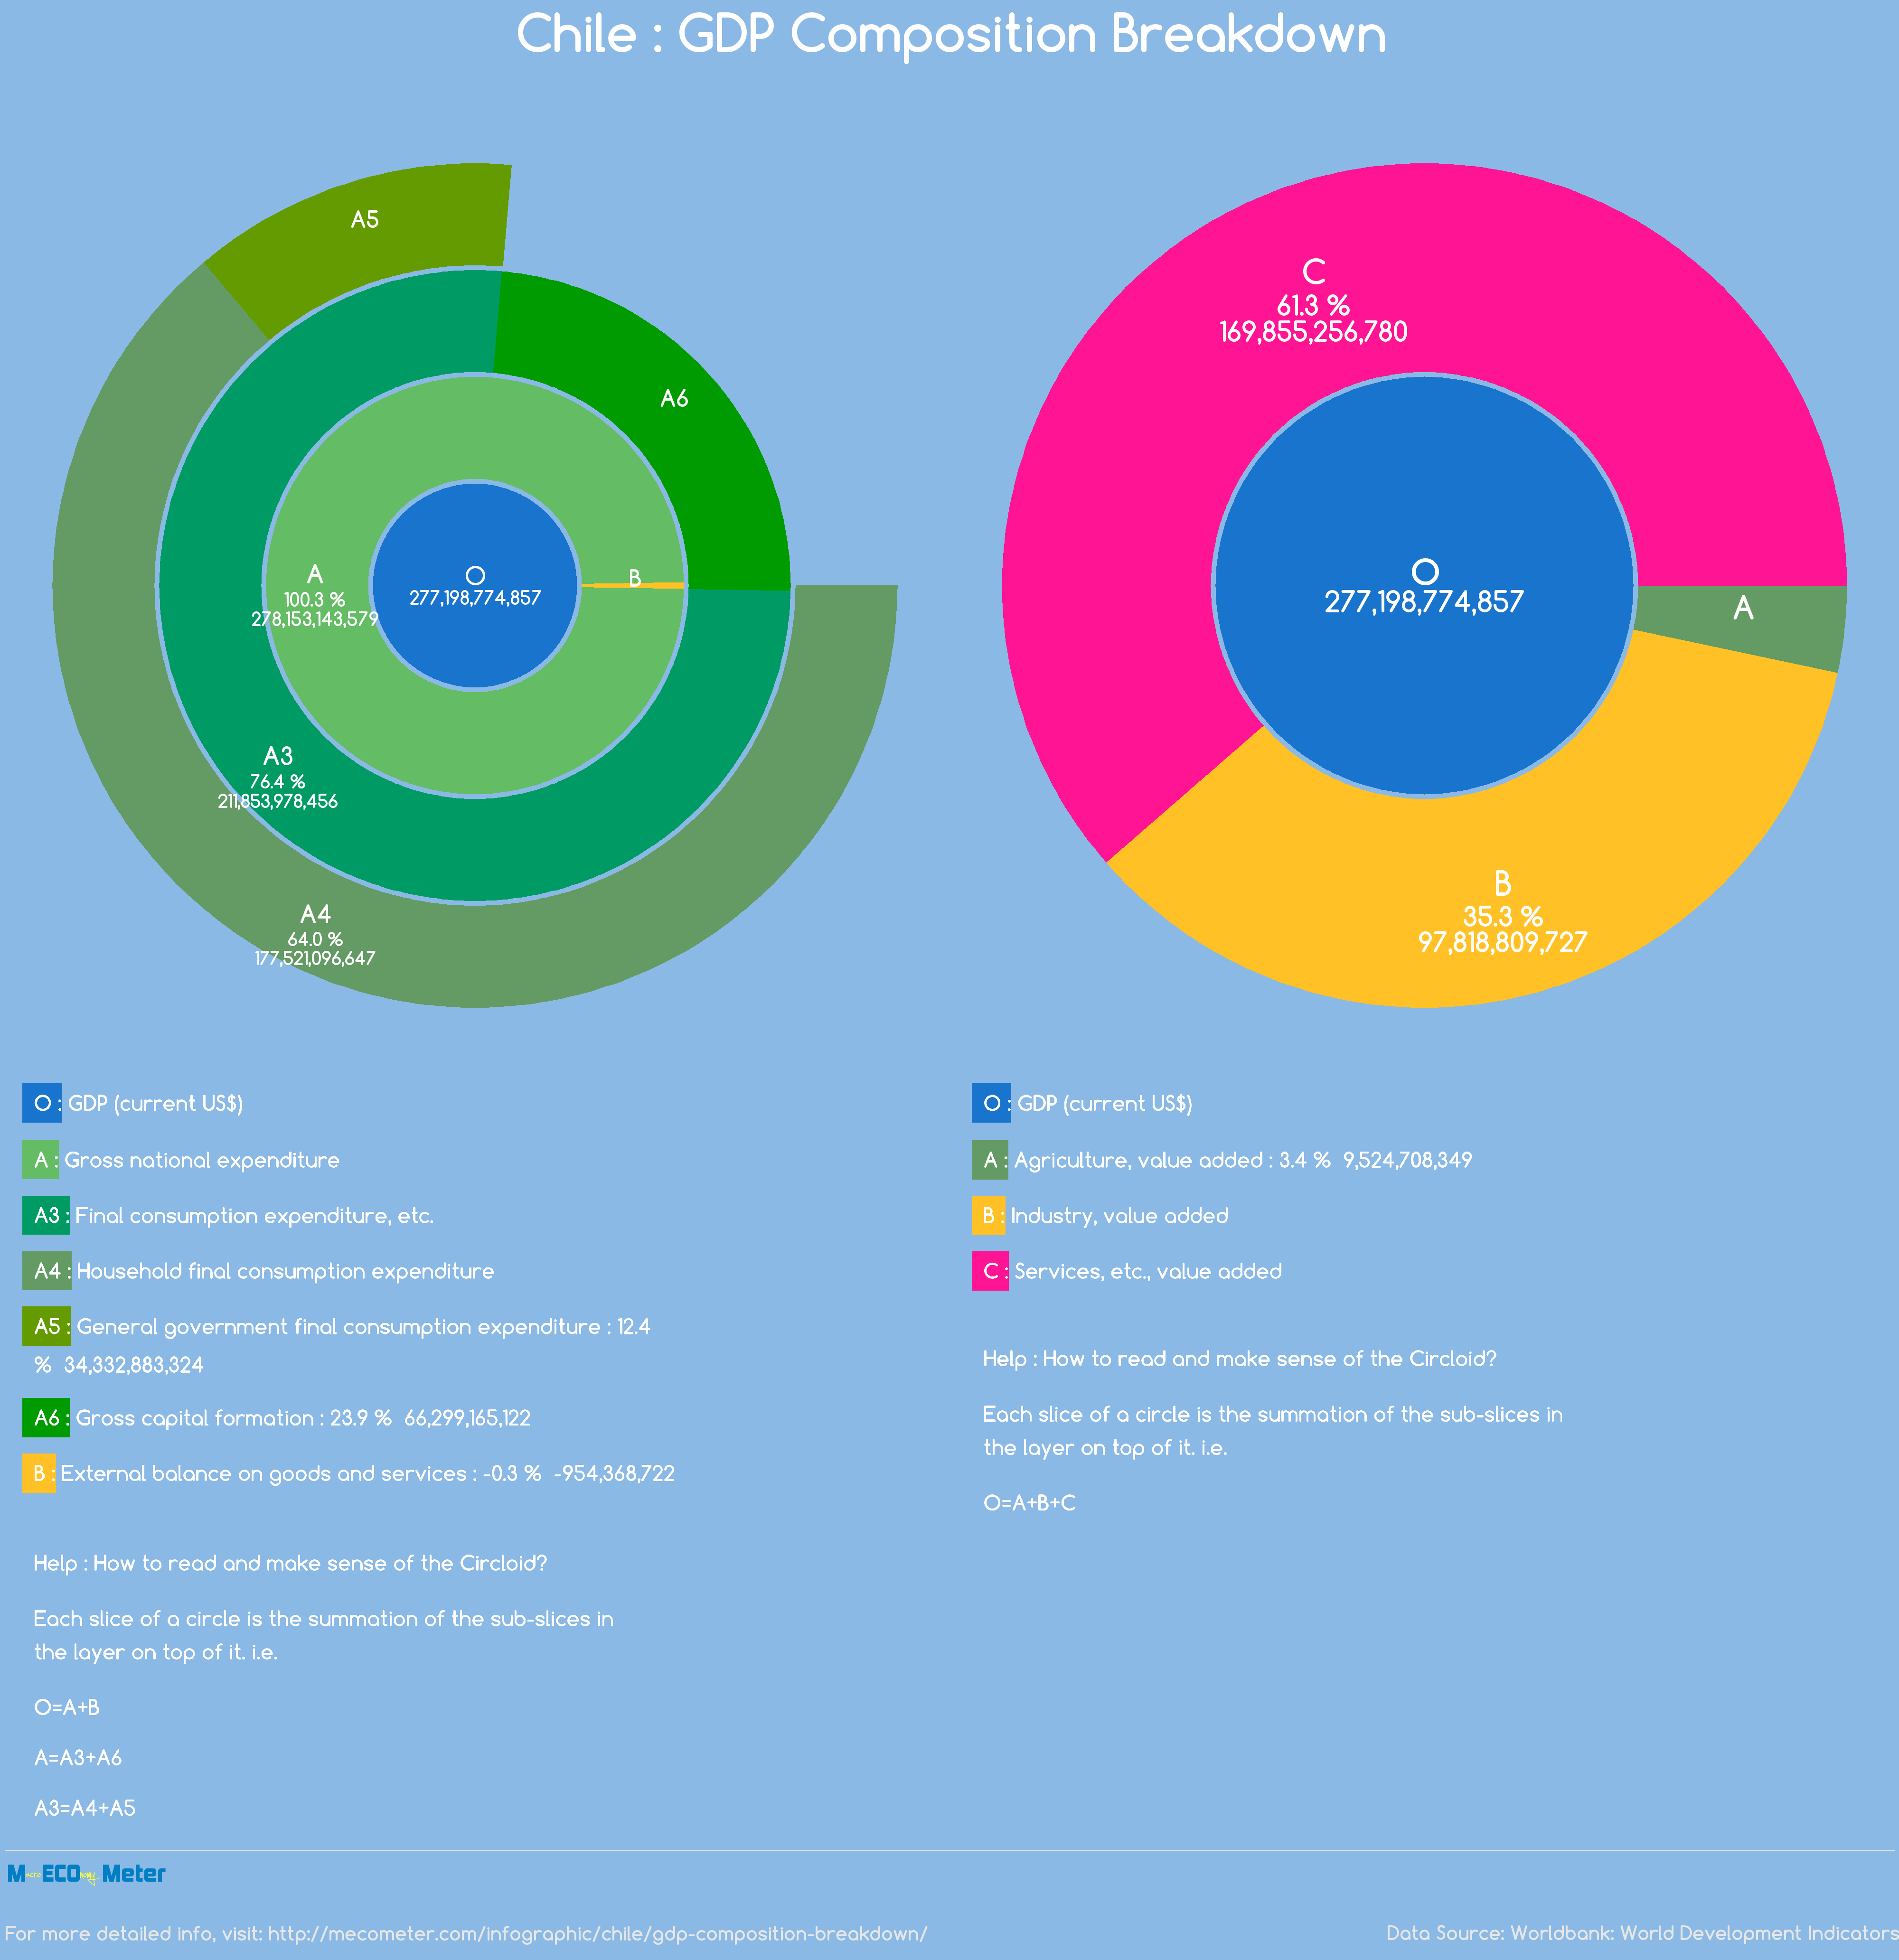 Chile : GDP Composition Breakdown